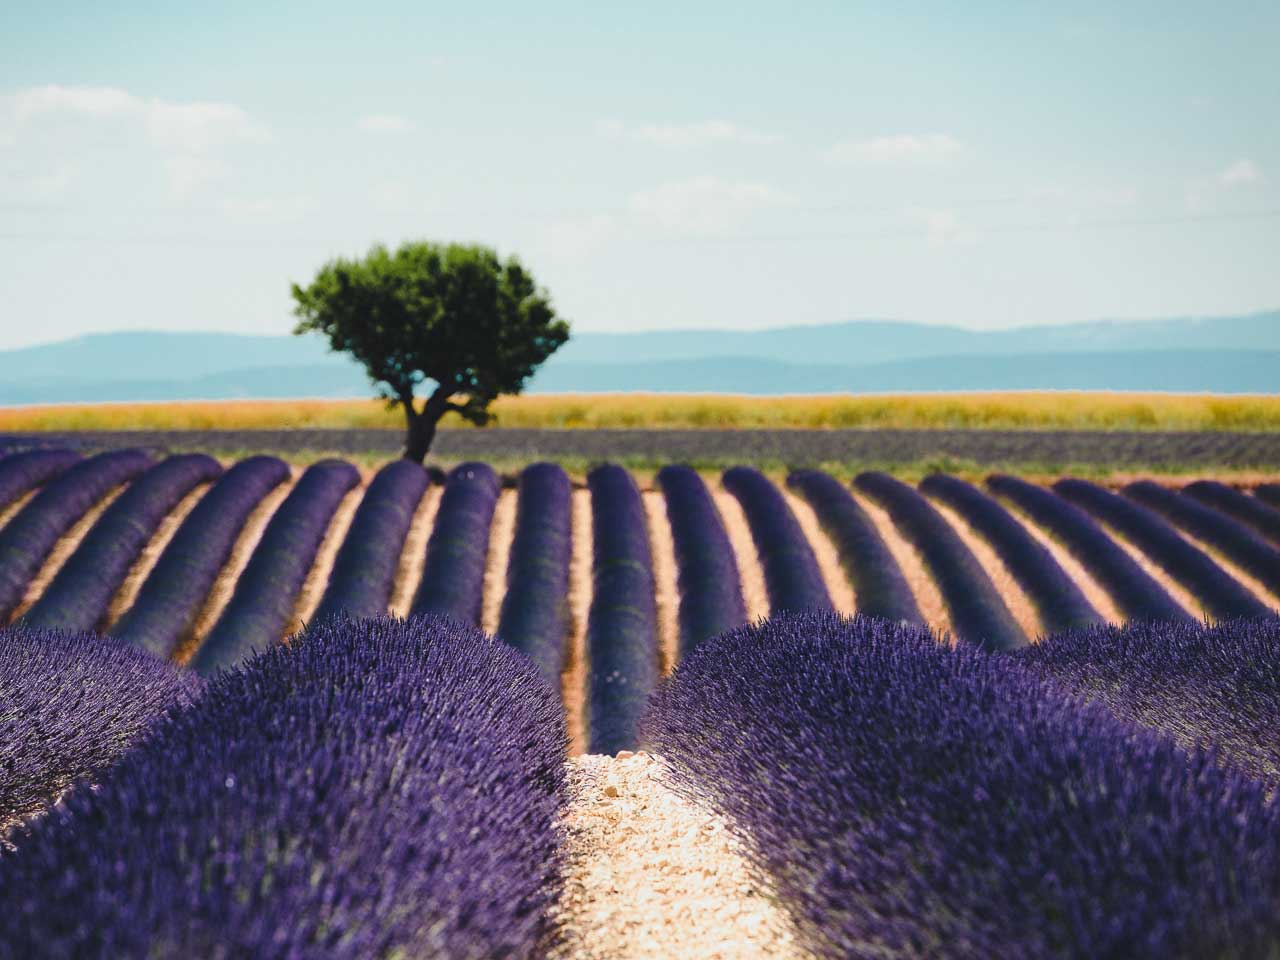 The beautiful lavender fields of Valensole in the Provence region of the south of France.